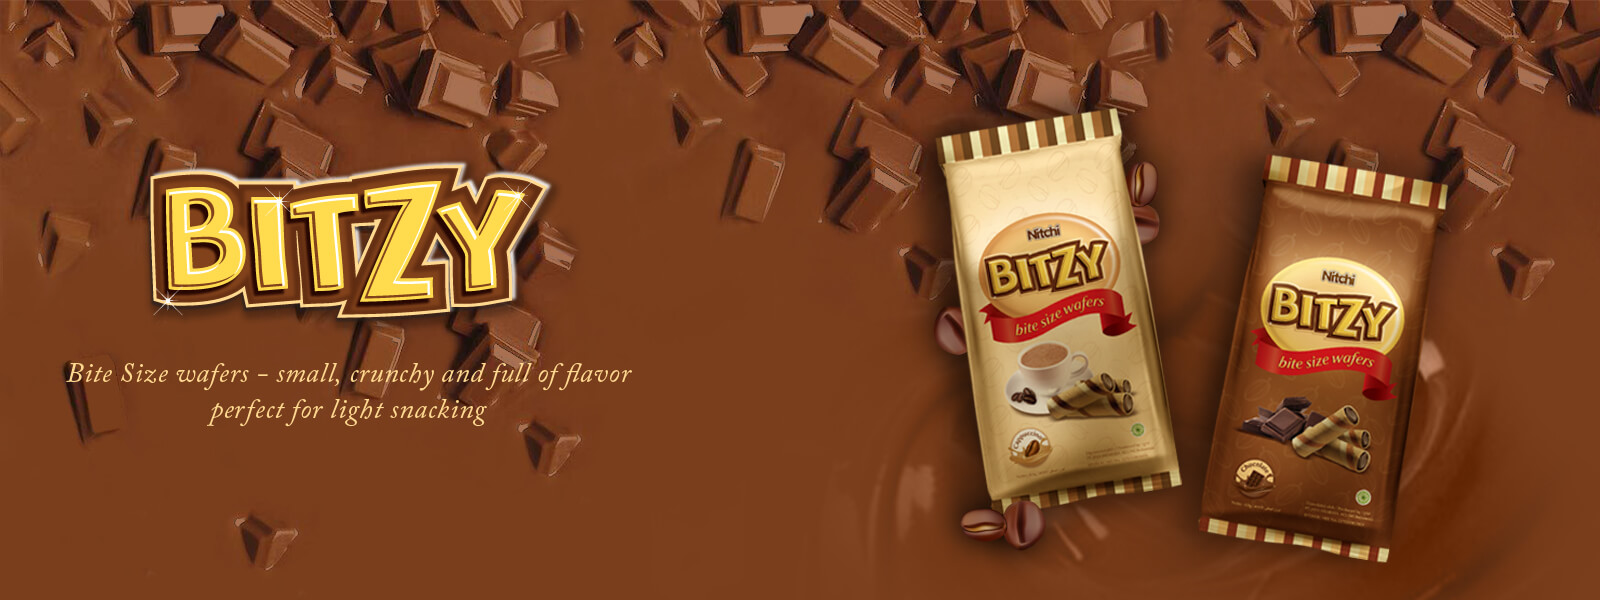 Bitzy Bite Size Wafers small cruncy and full of flavor perfect for light snacking